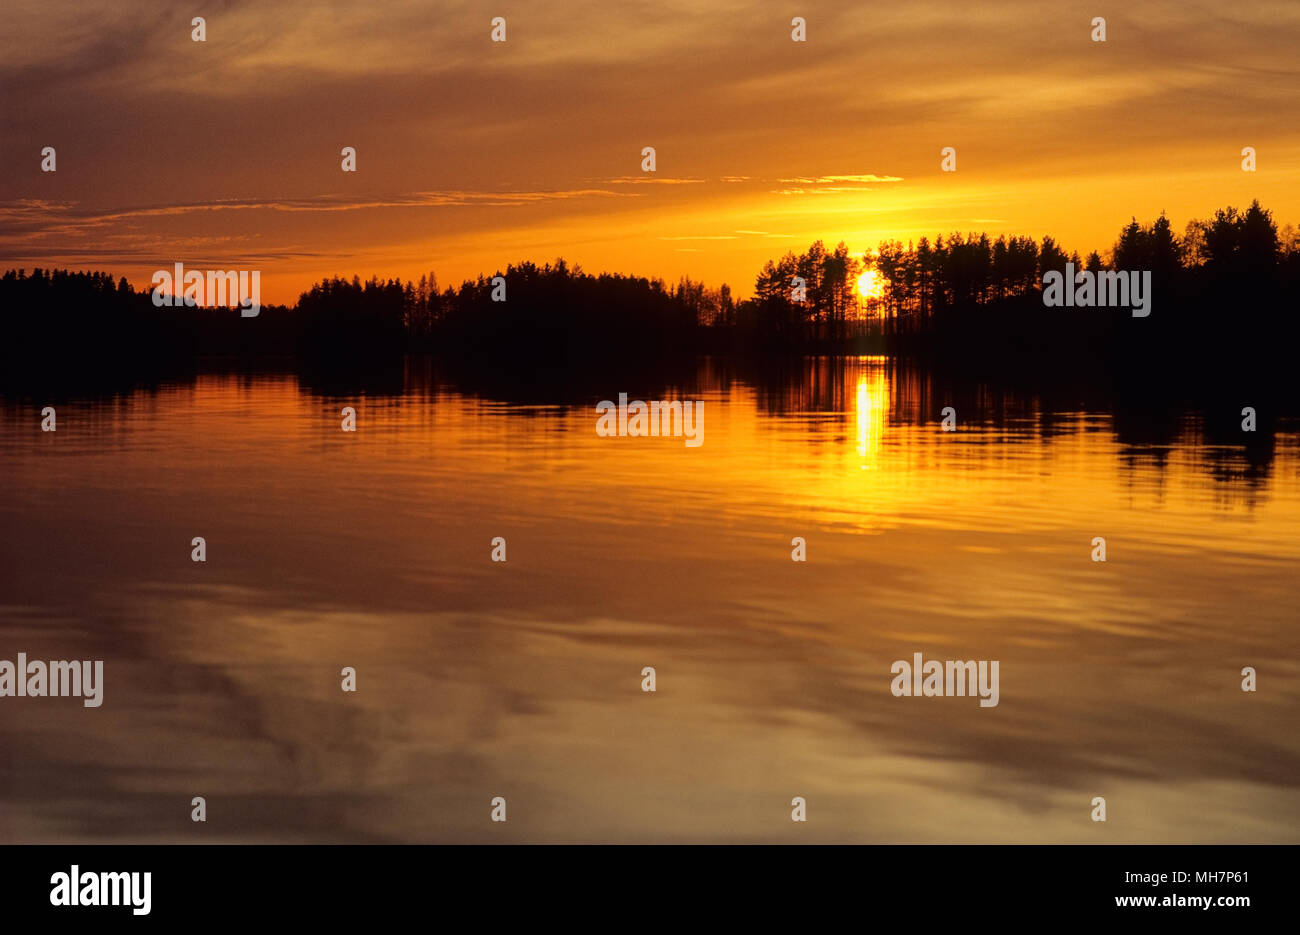 Sunset with intense colors over lake in Finland. Scanned from film. - Stock Image